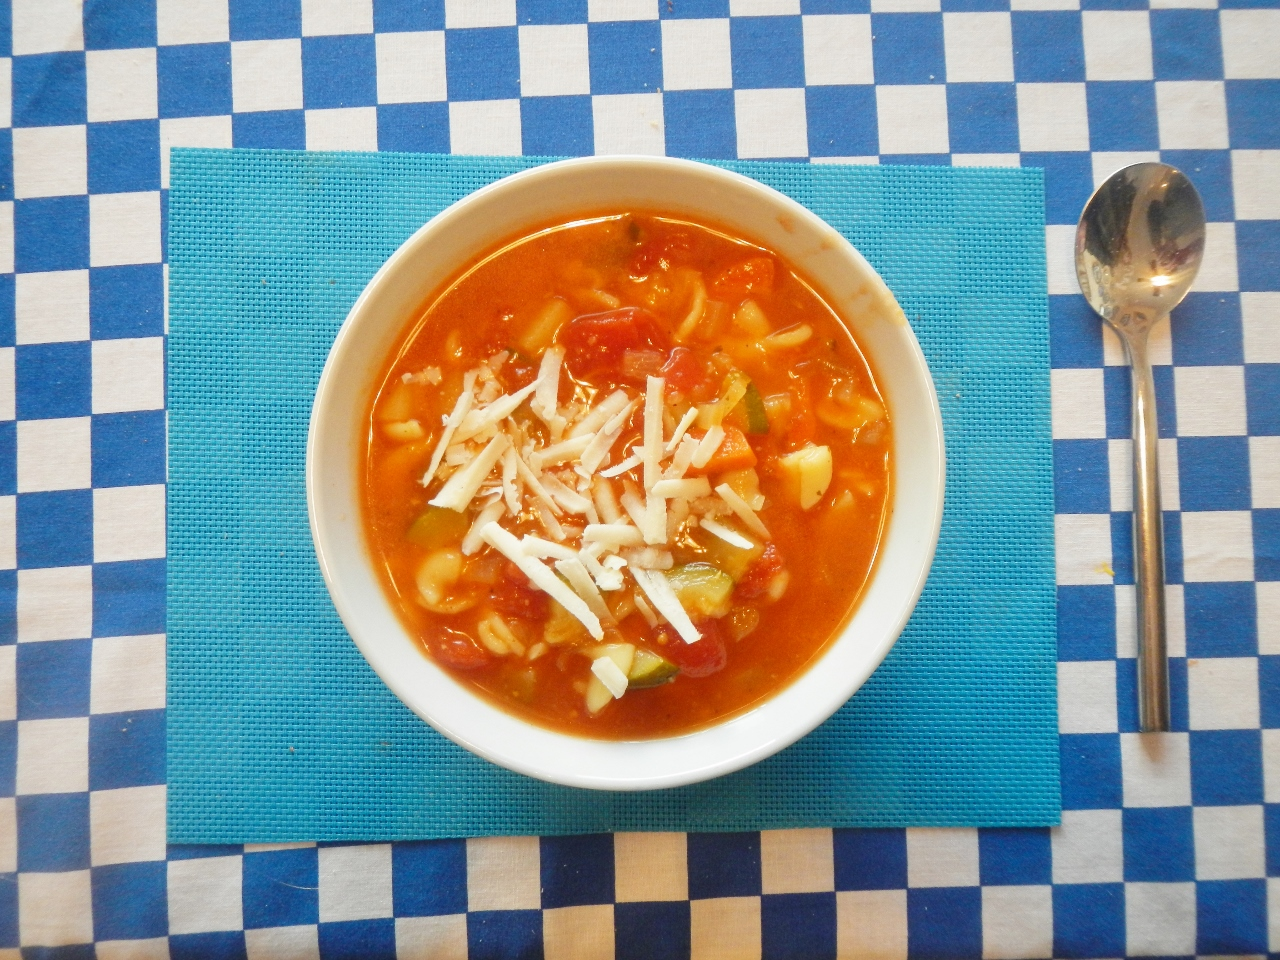 How to make Minestrone Soup and Build a Successful Business